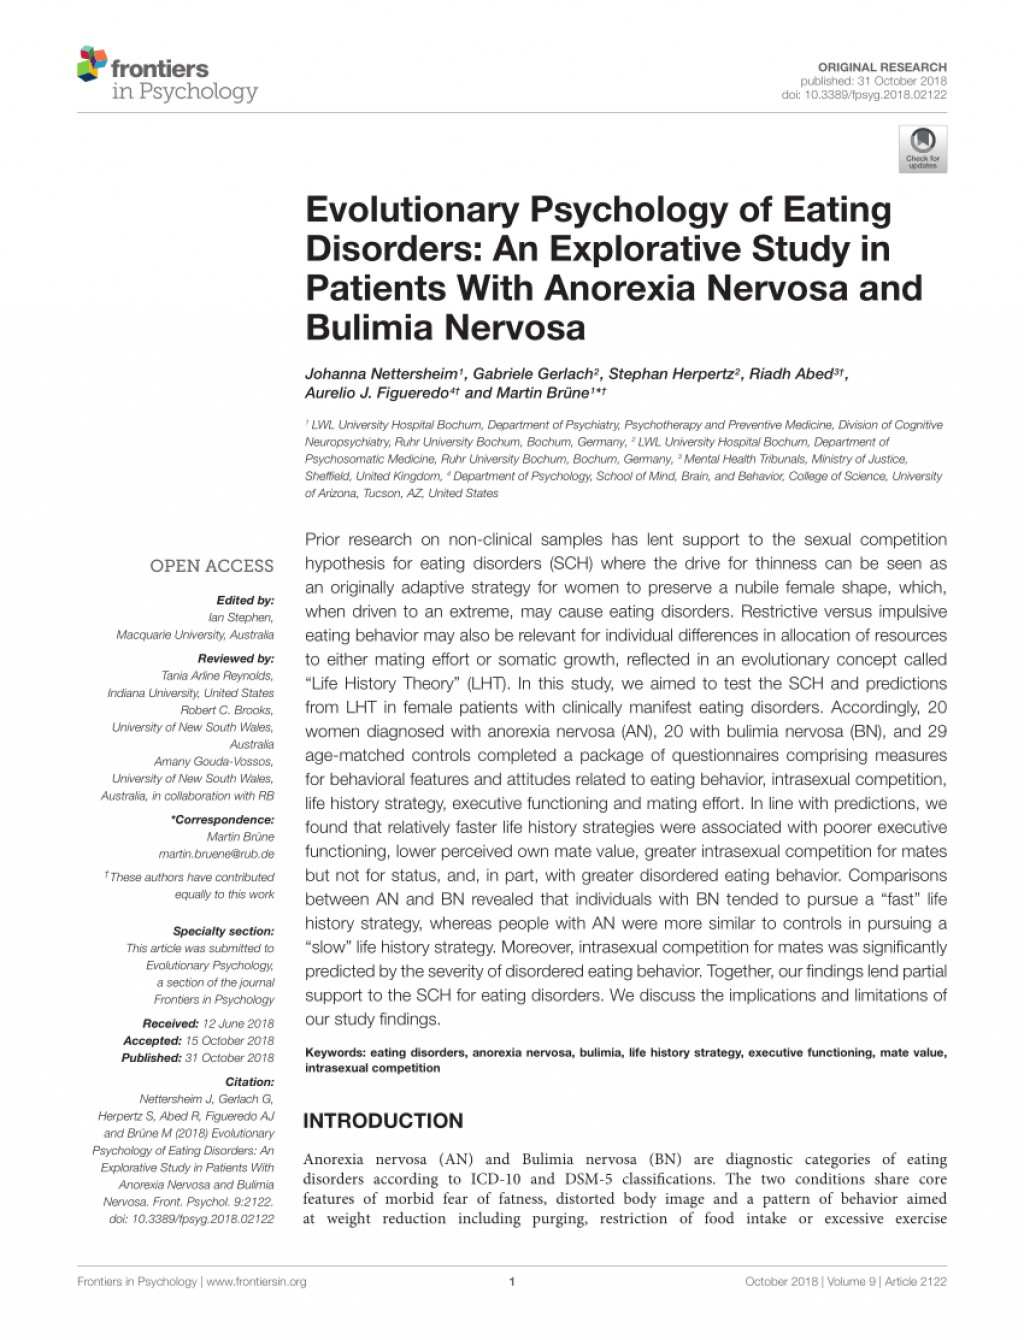 003 Largepreview Research Paper Psychological On Eating Imposing Disorders Psychology Topics Large